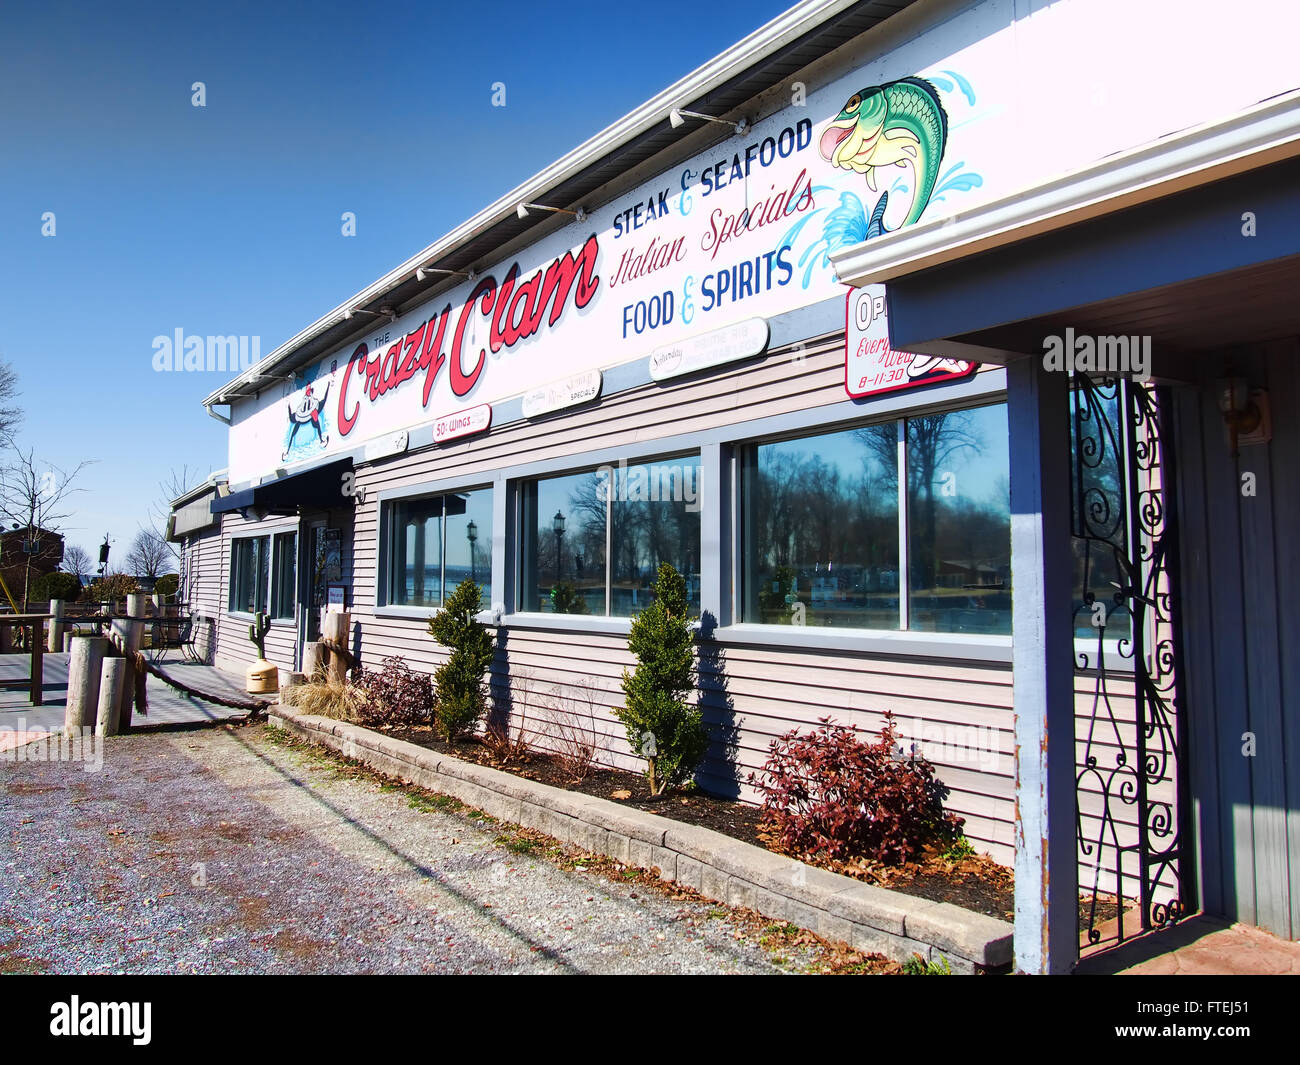 The Crazy Clam Restaurant Sylvan Beach - Stock Image